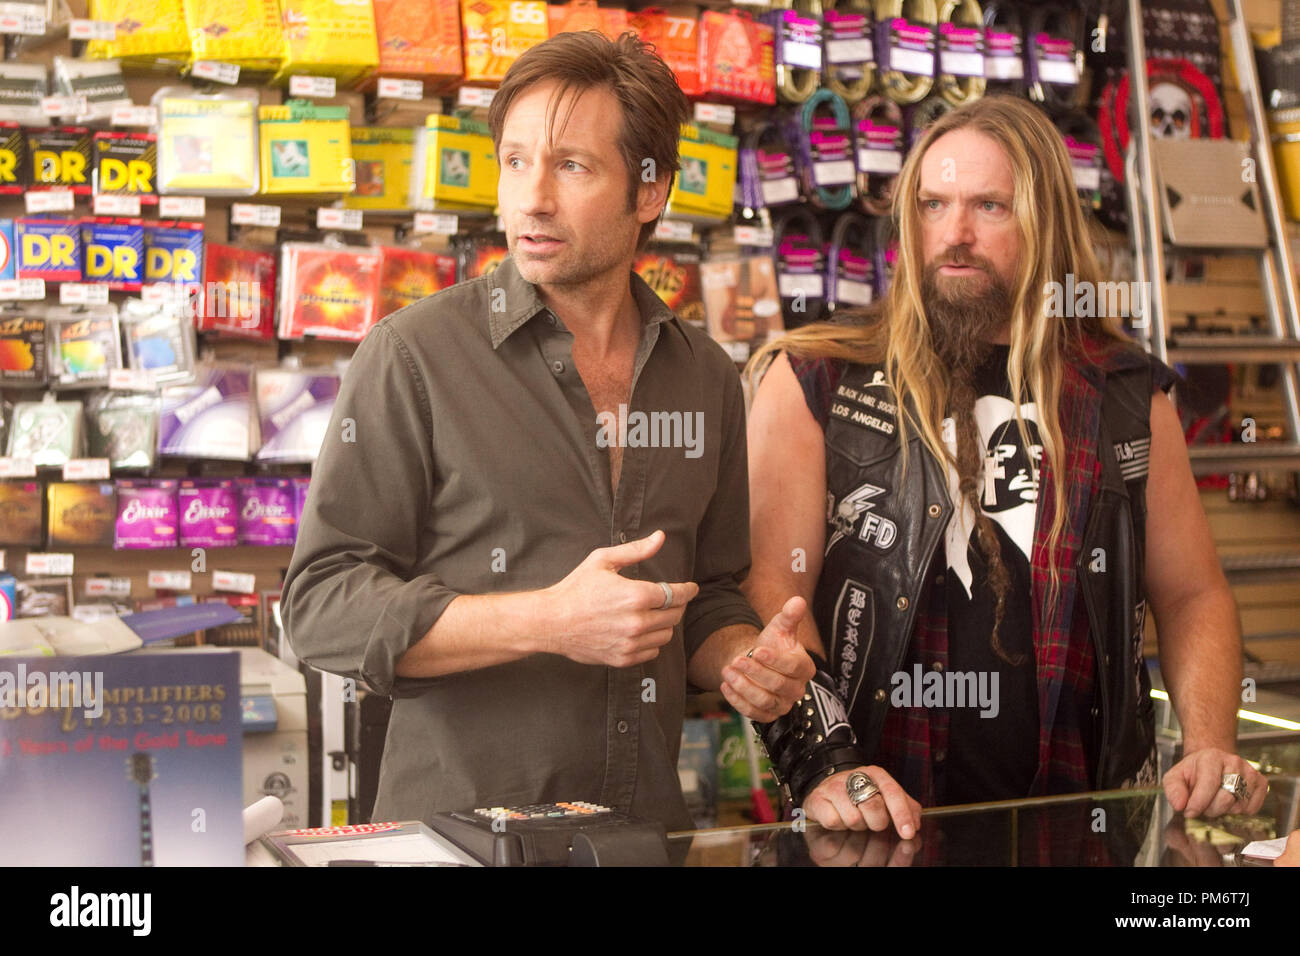 Download californication tv show all season directly.